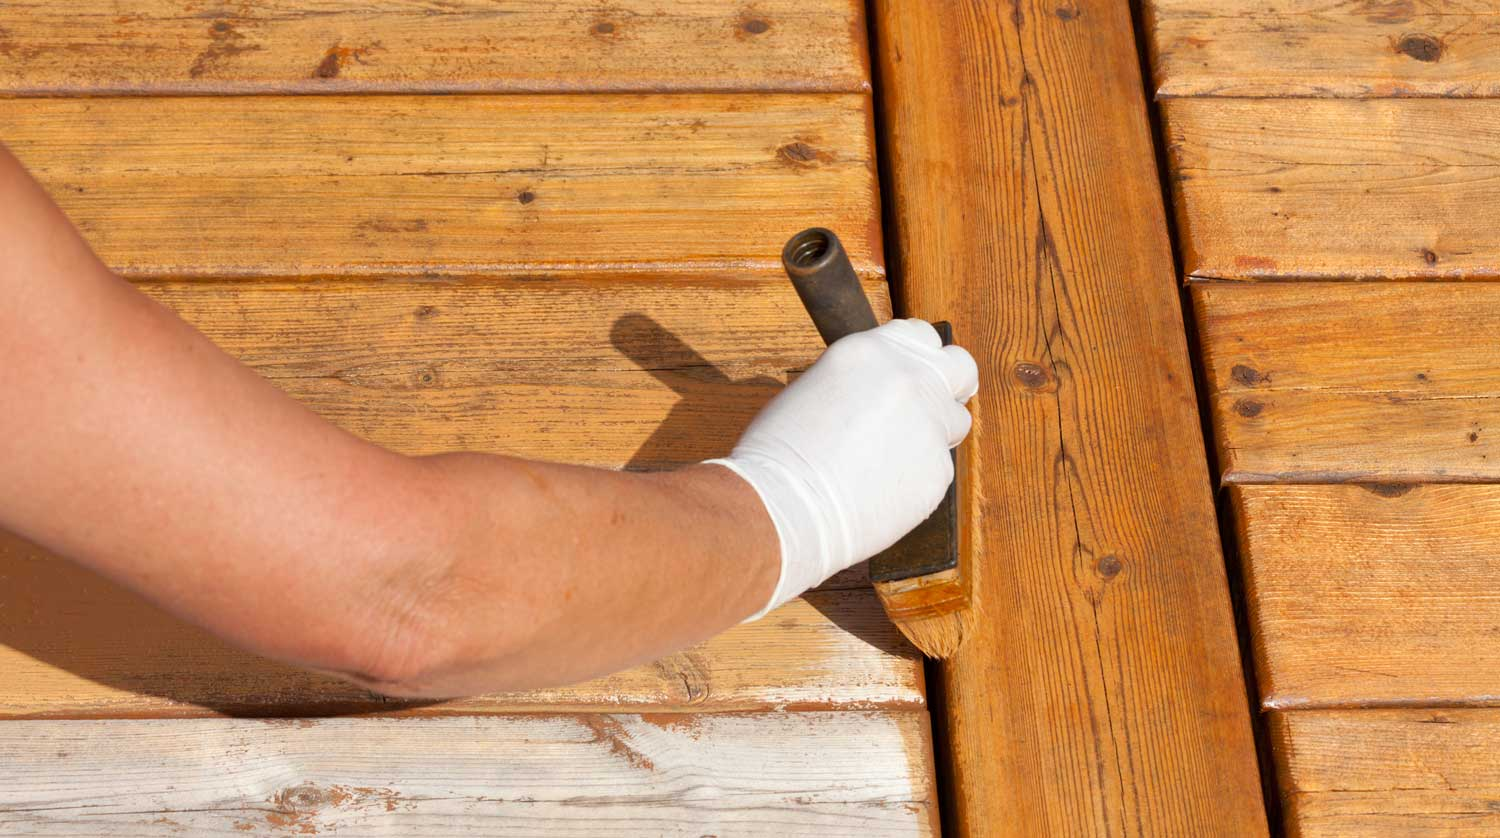 person staining a deck using a paint brush